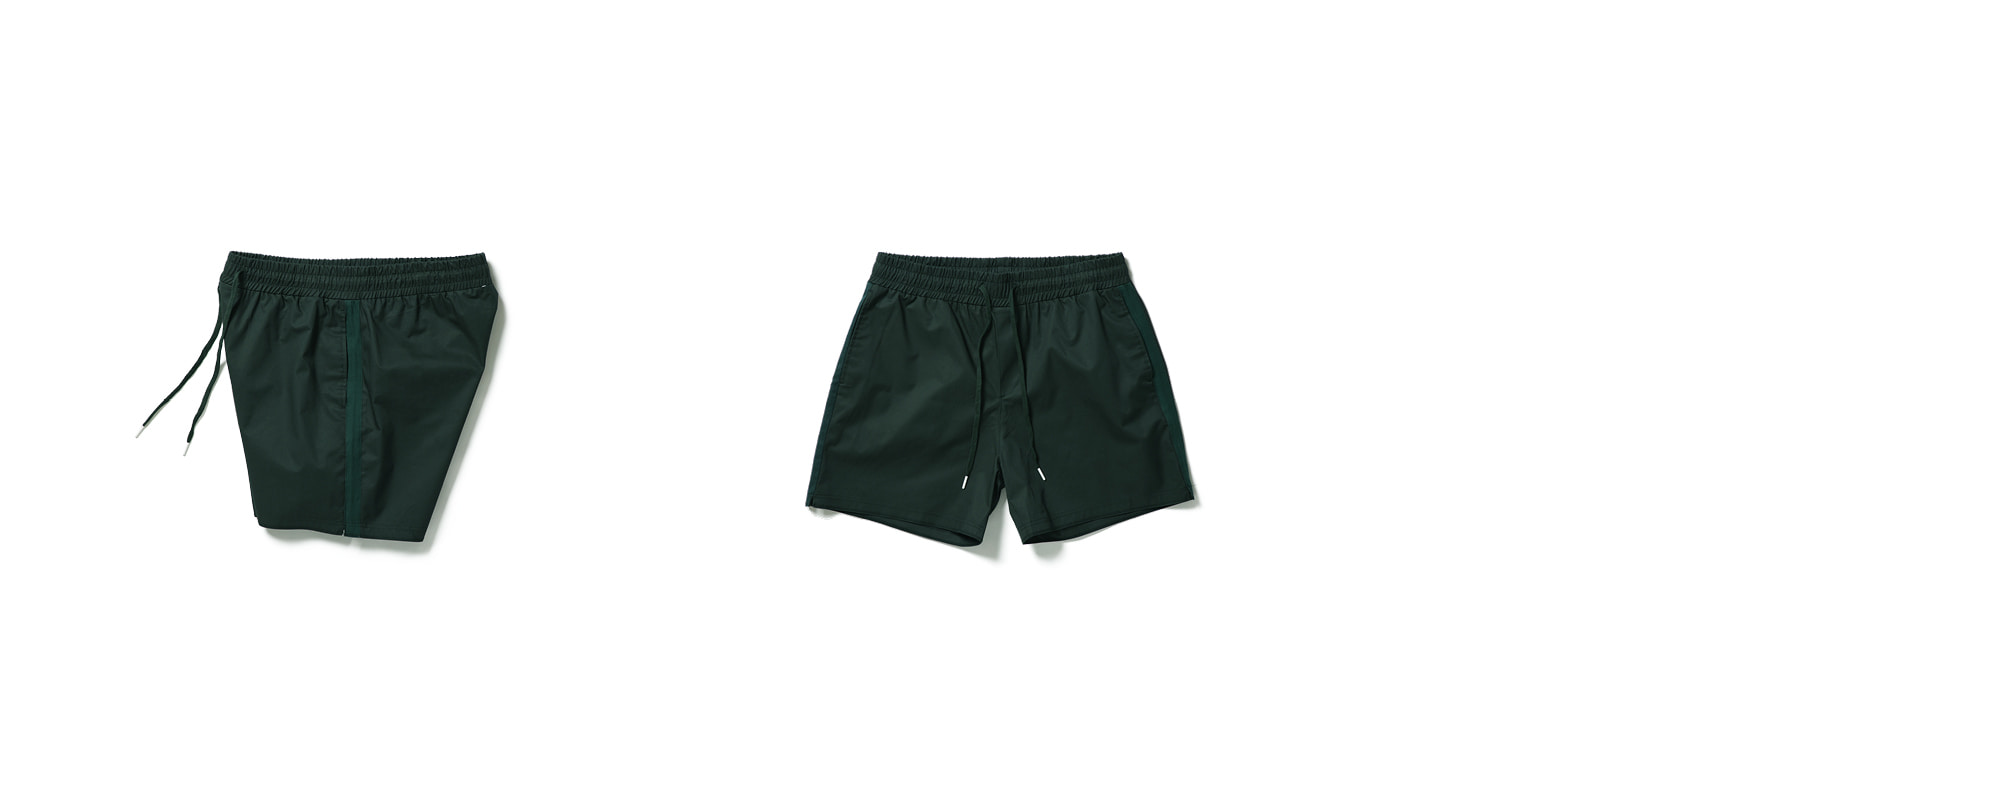 Double Shorts Green